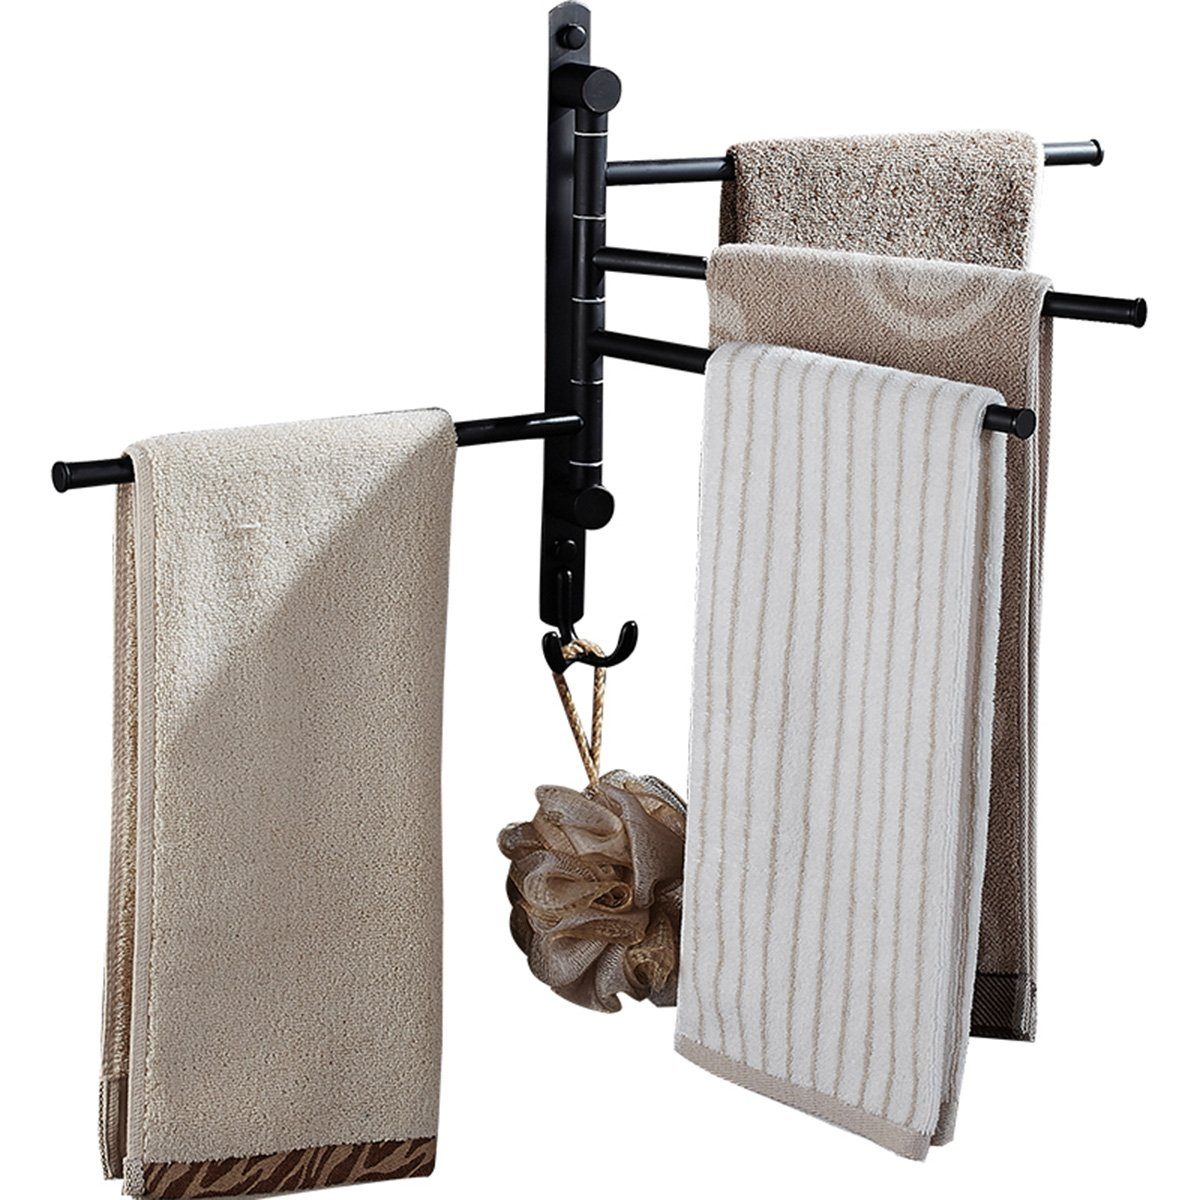 CBTONE Swing Out Towel Rack Wall Mounted Oil Rubbed Bronze Swivel Towel Bars for Bathroom with 4 Arms and 2 Hooks, Black by CBTONE